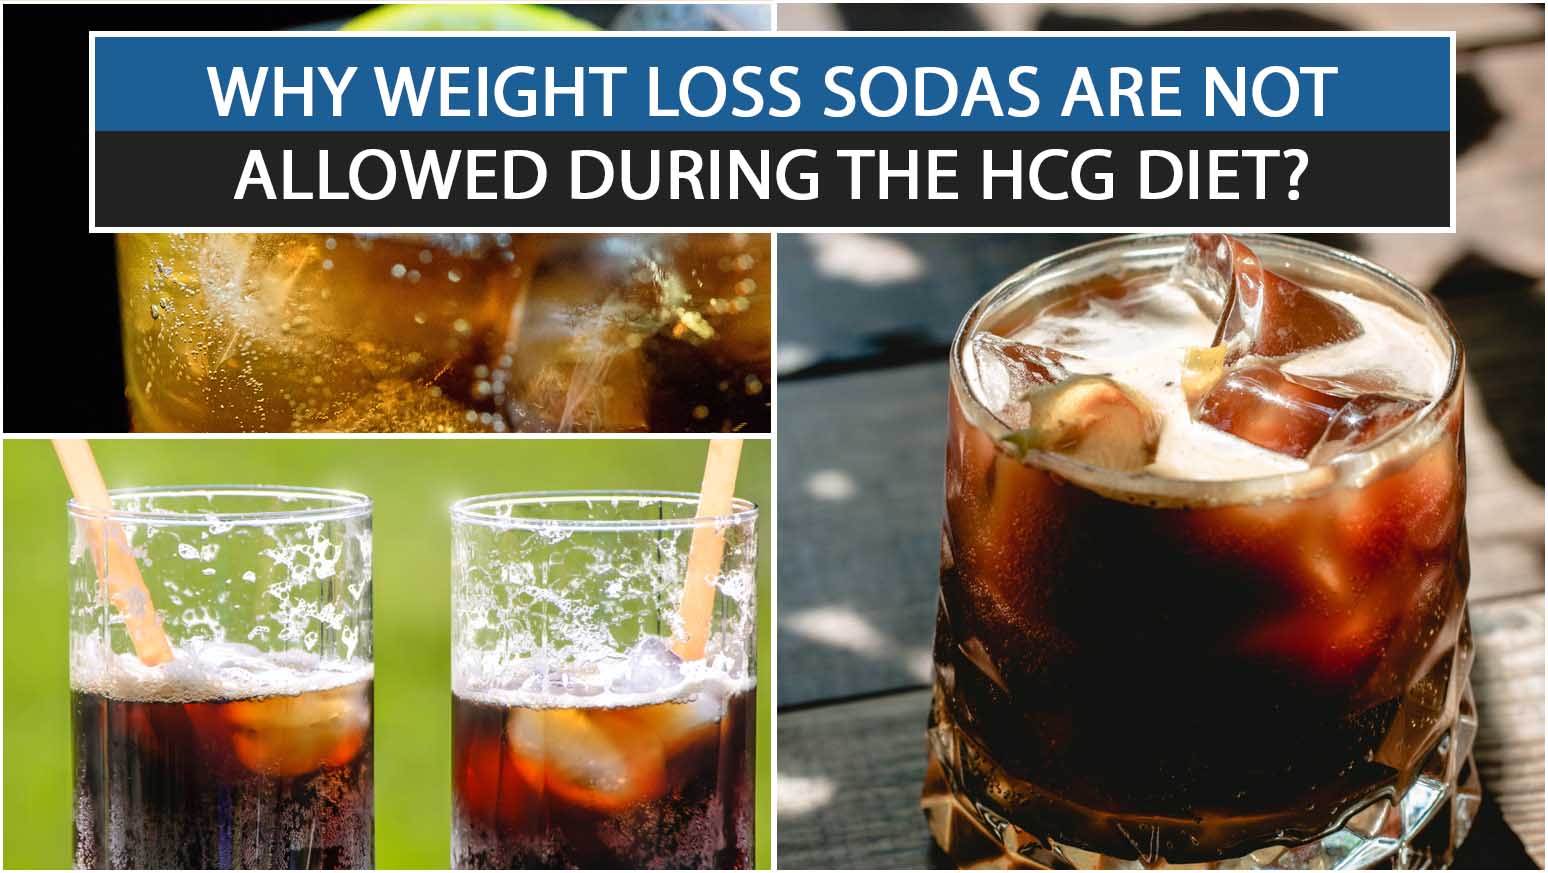 WHY WEIGHT LOSS SODAS ARE NOT ALLOWED DURING THE HCG DIET